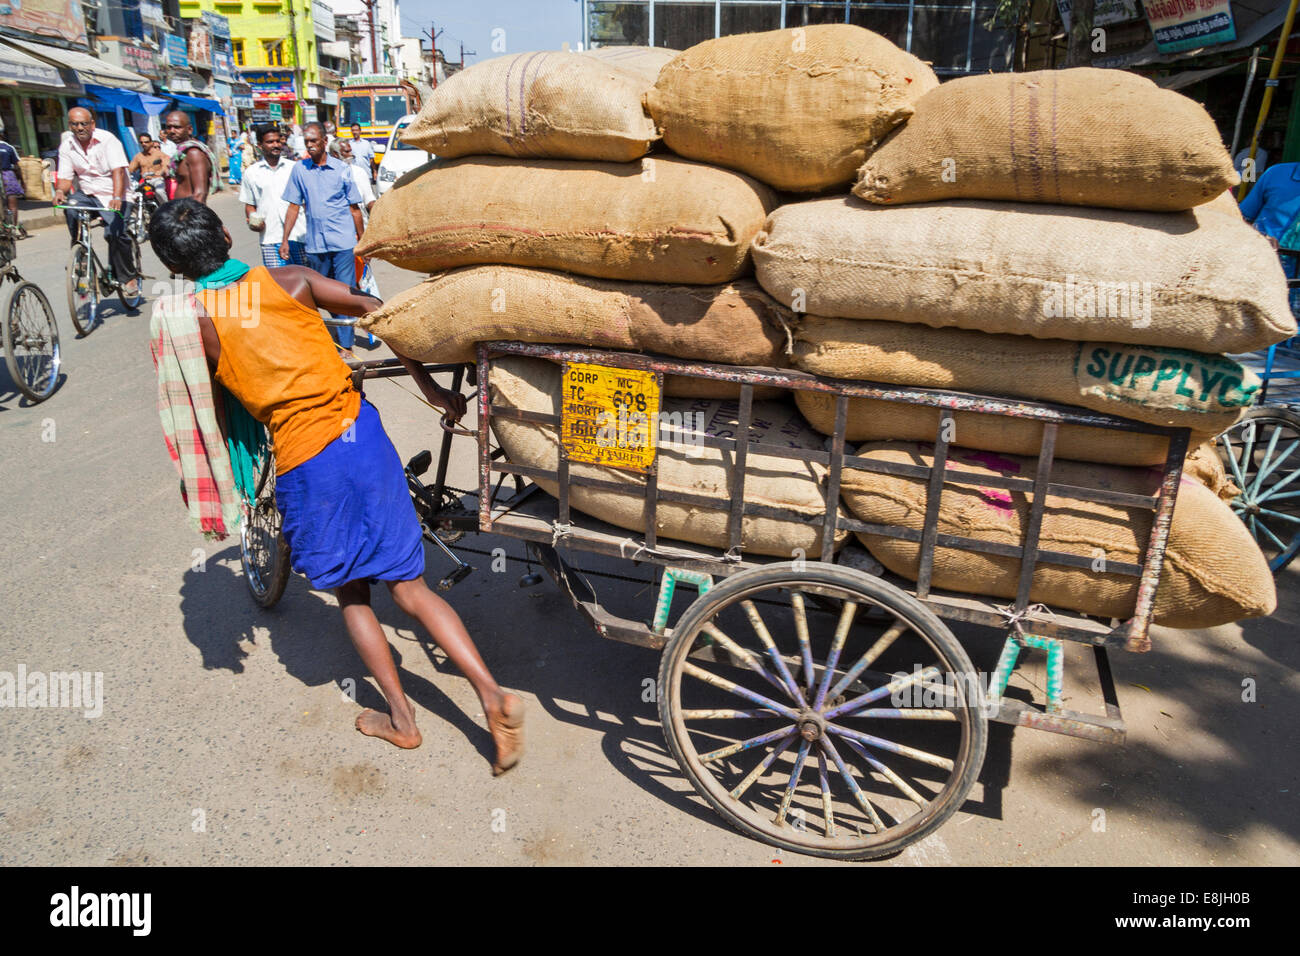 YOUNG RICKSHAW DRIVER AND A LOAD OF MANY HEAVY SACKS INDIA - Stock Image